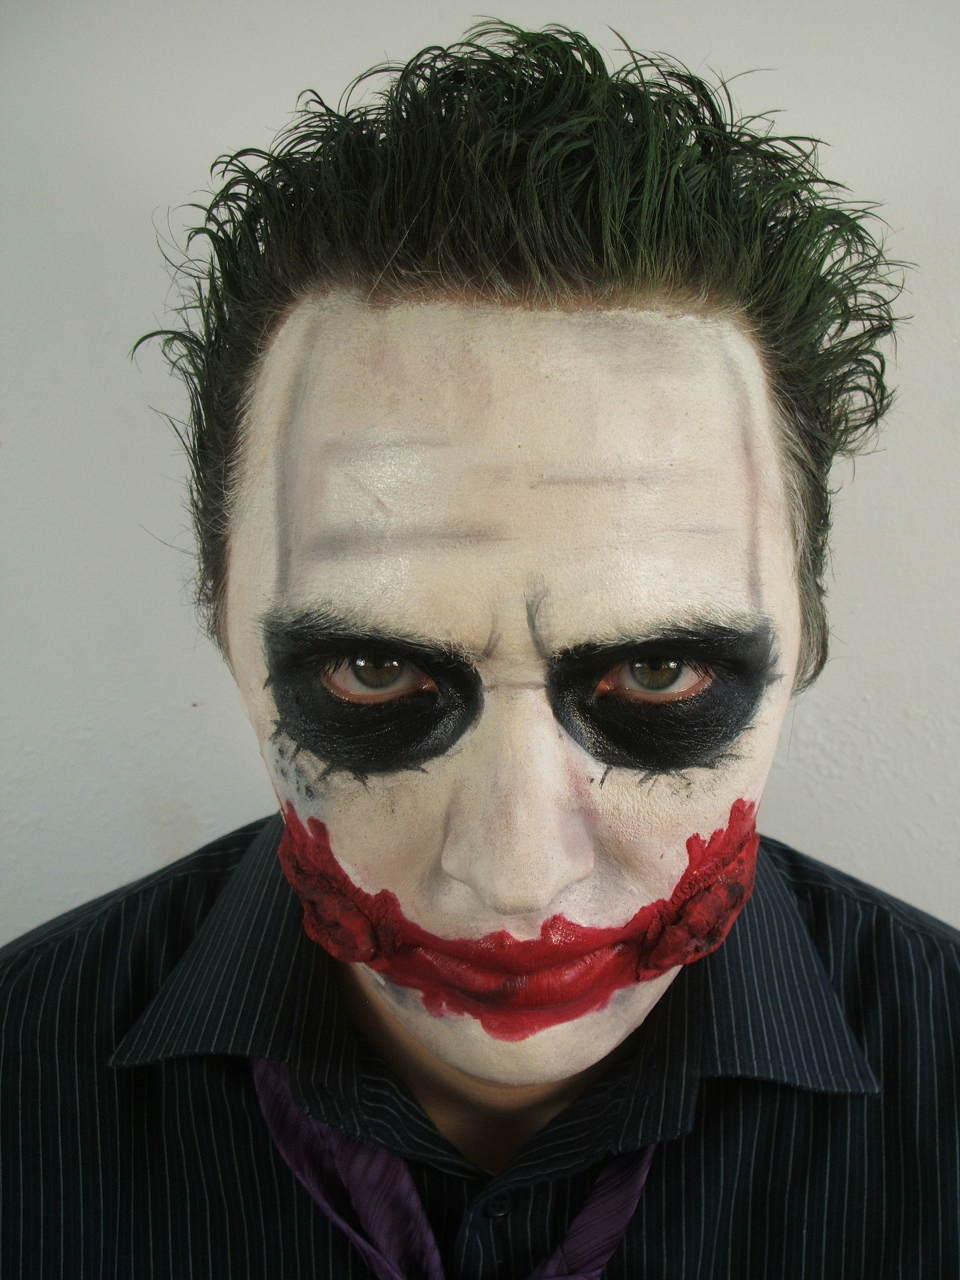 The Joker - Heath Ledger